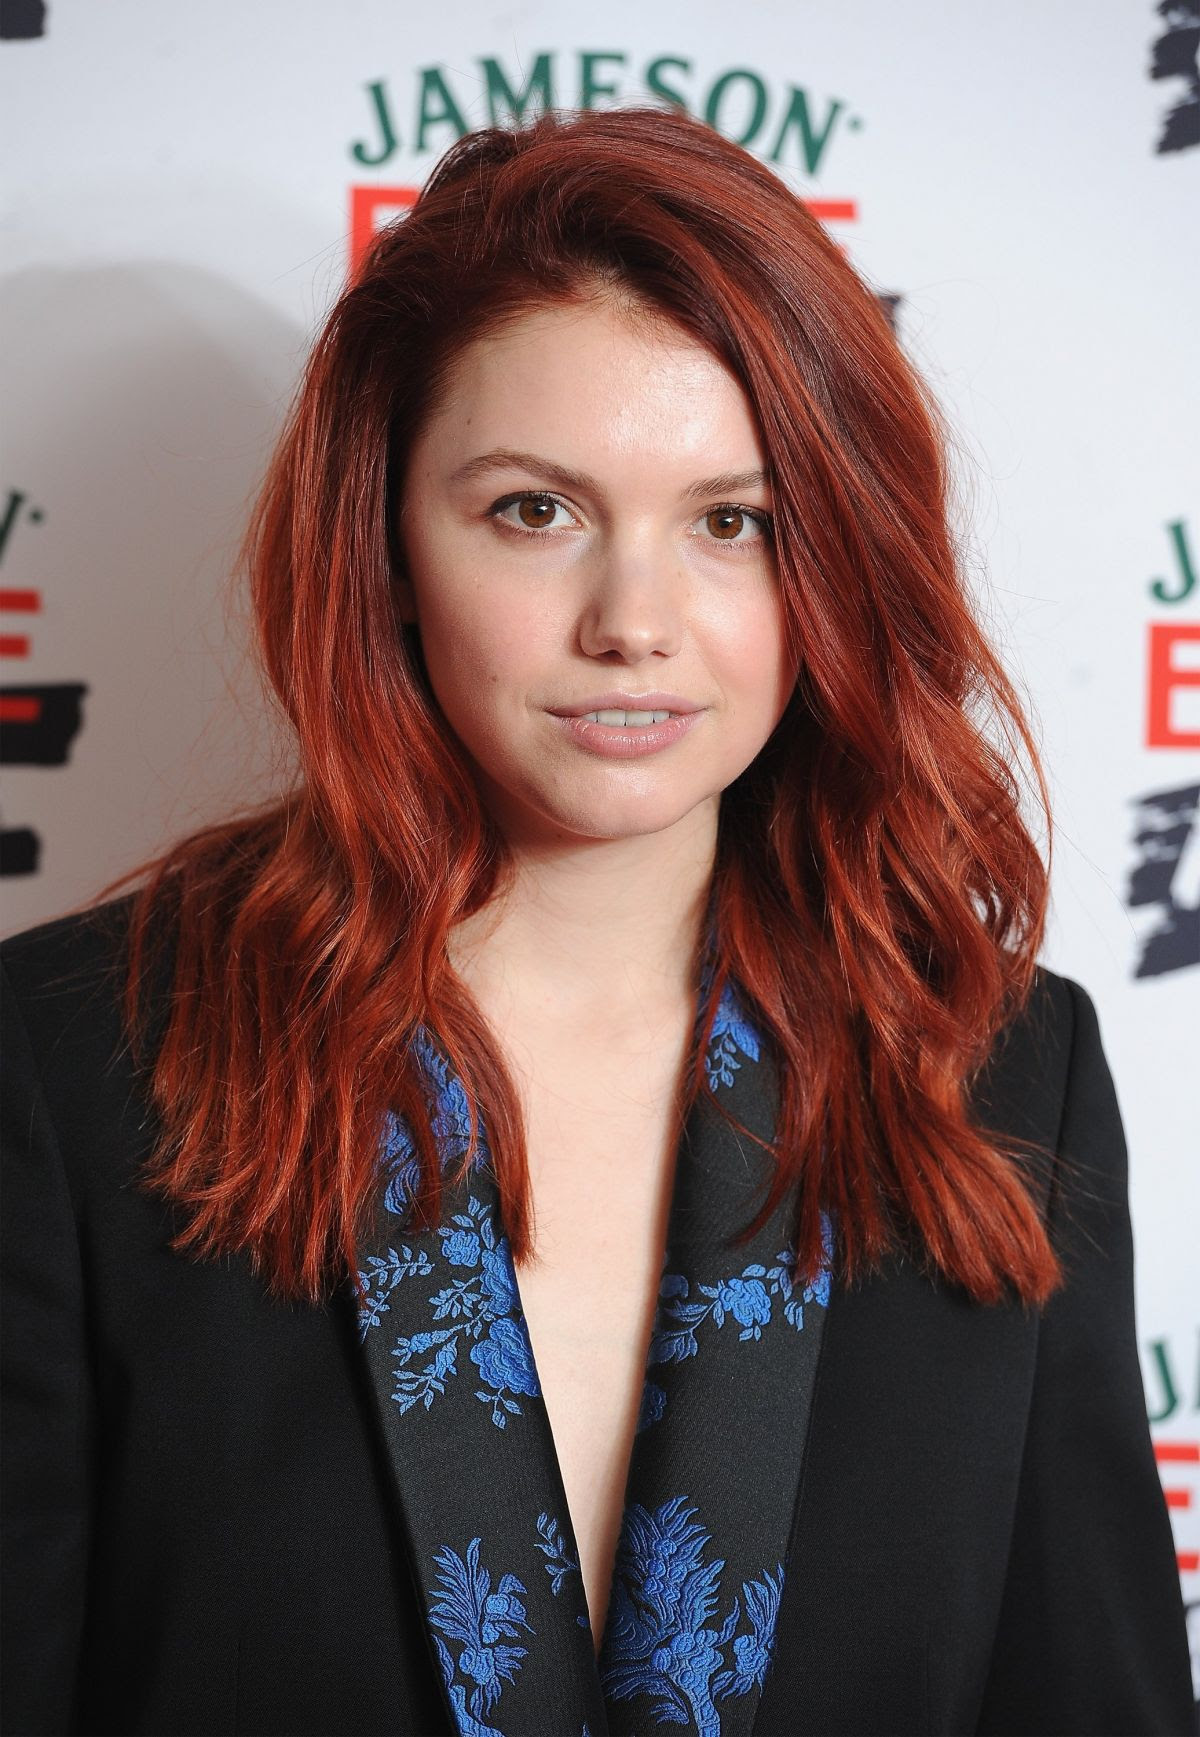 HANNAH MURRAY at Jameson Empire Awards in London 03/20/2016